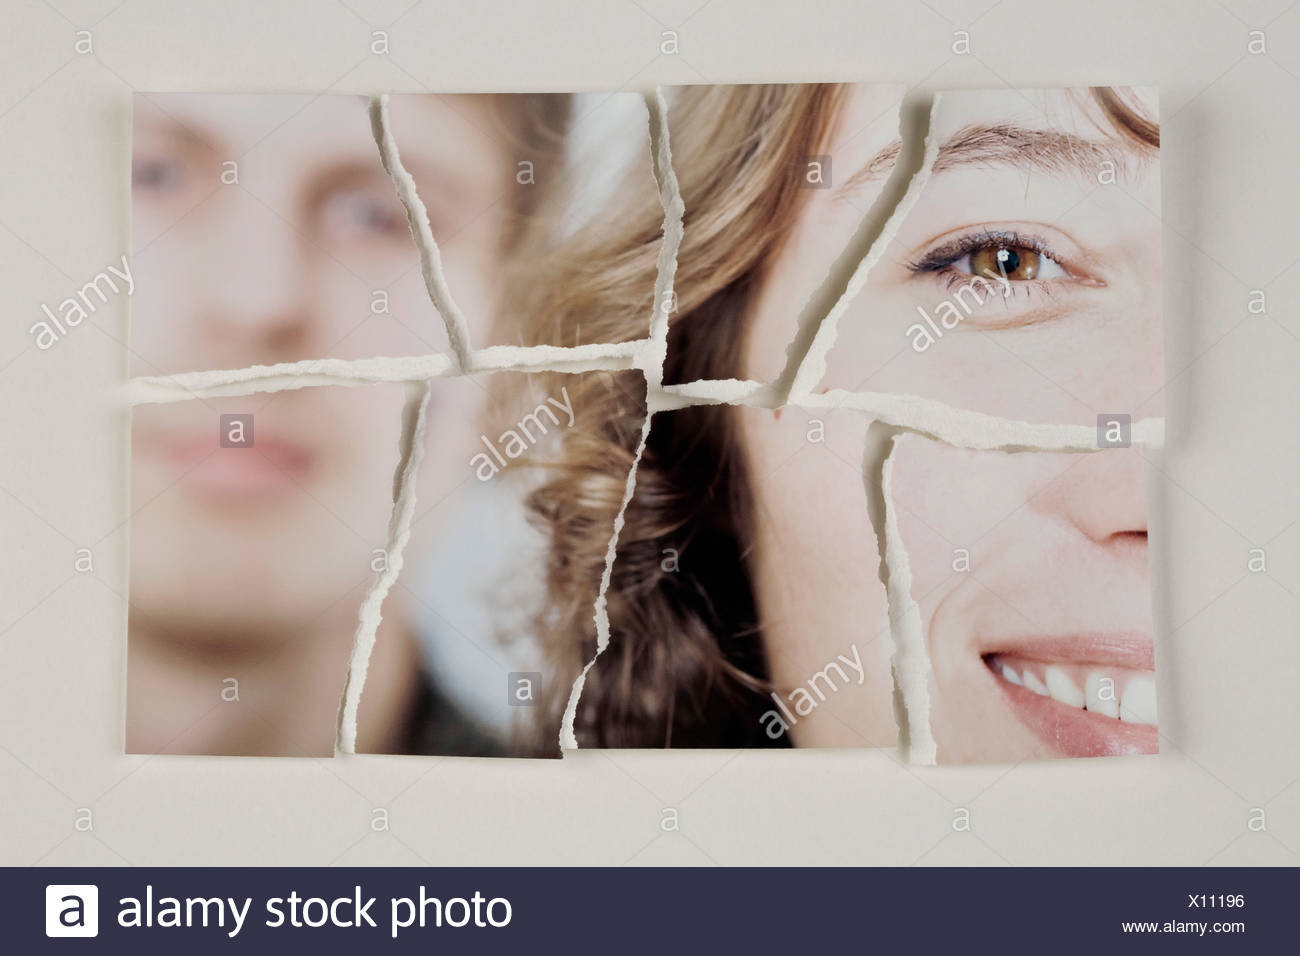 A photograph of a heterosexual couple torn into pieces - Stock Image